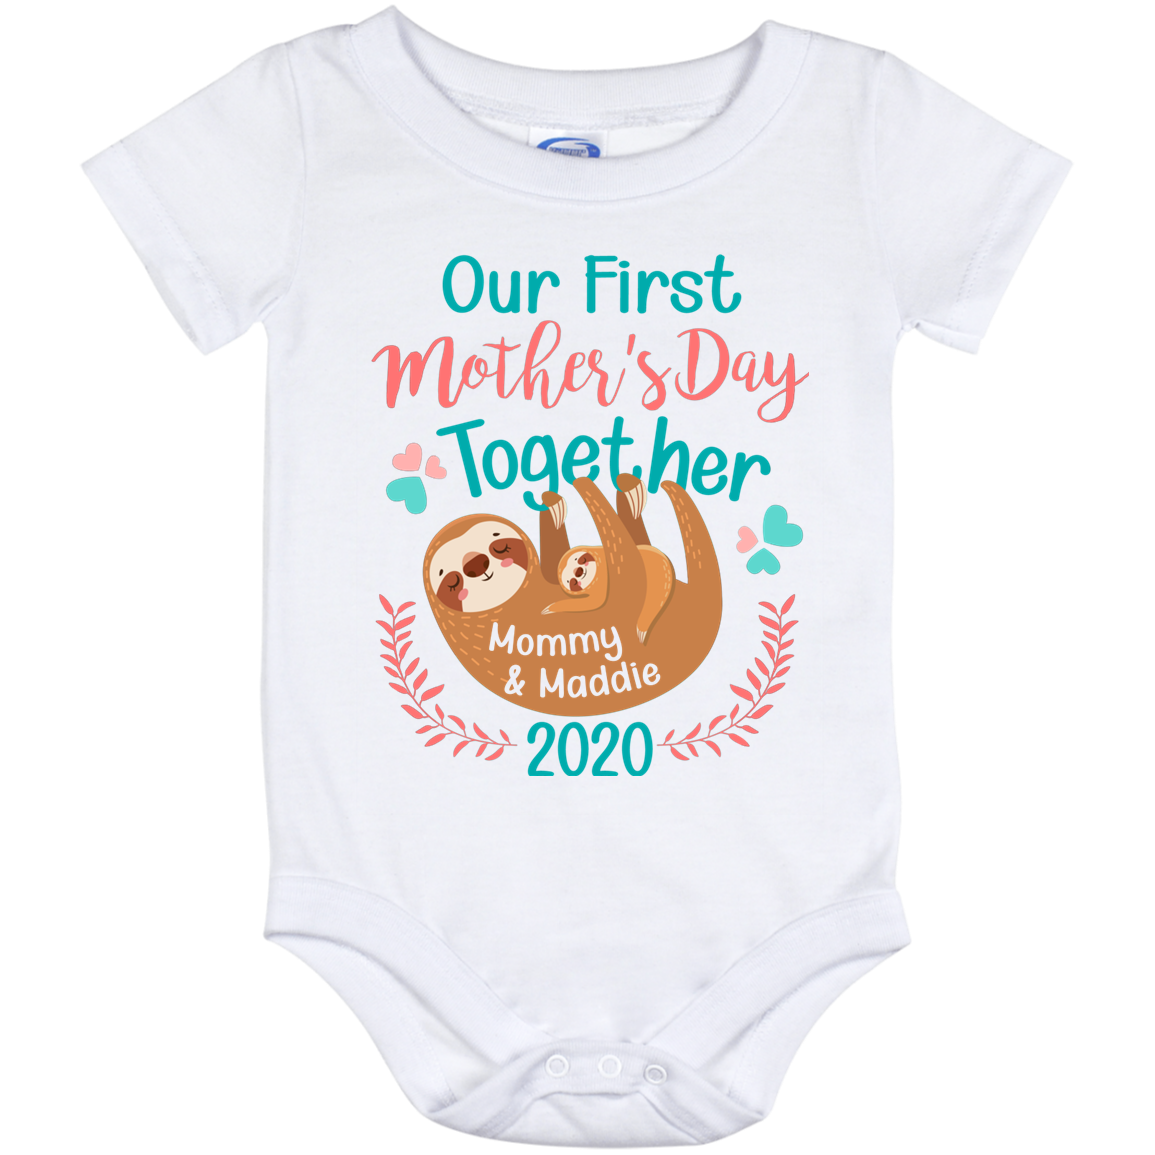 Our first mothers day out fit Mommy /& Me Outfit Baby bodysuit Gift new mama gift